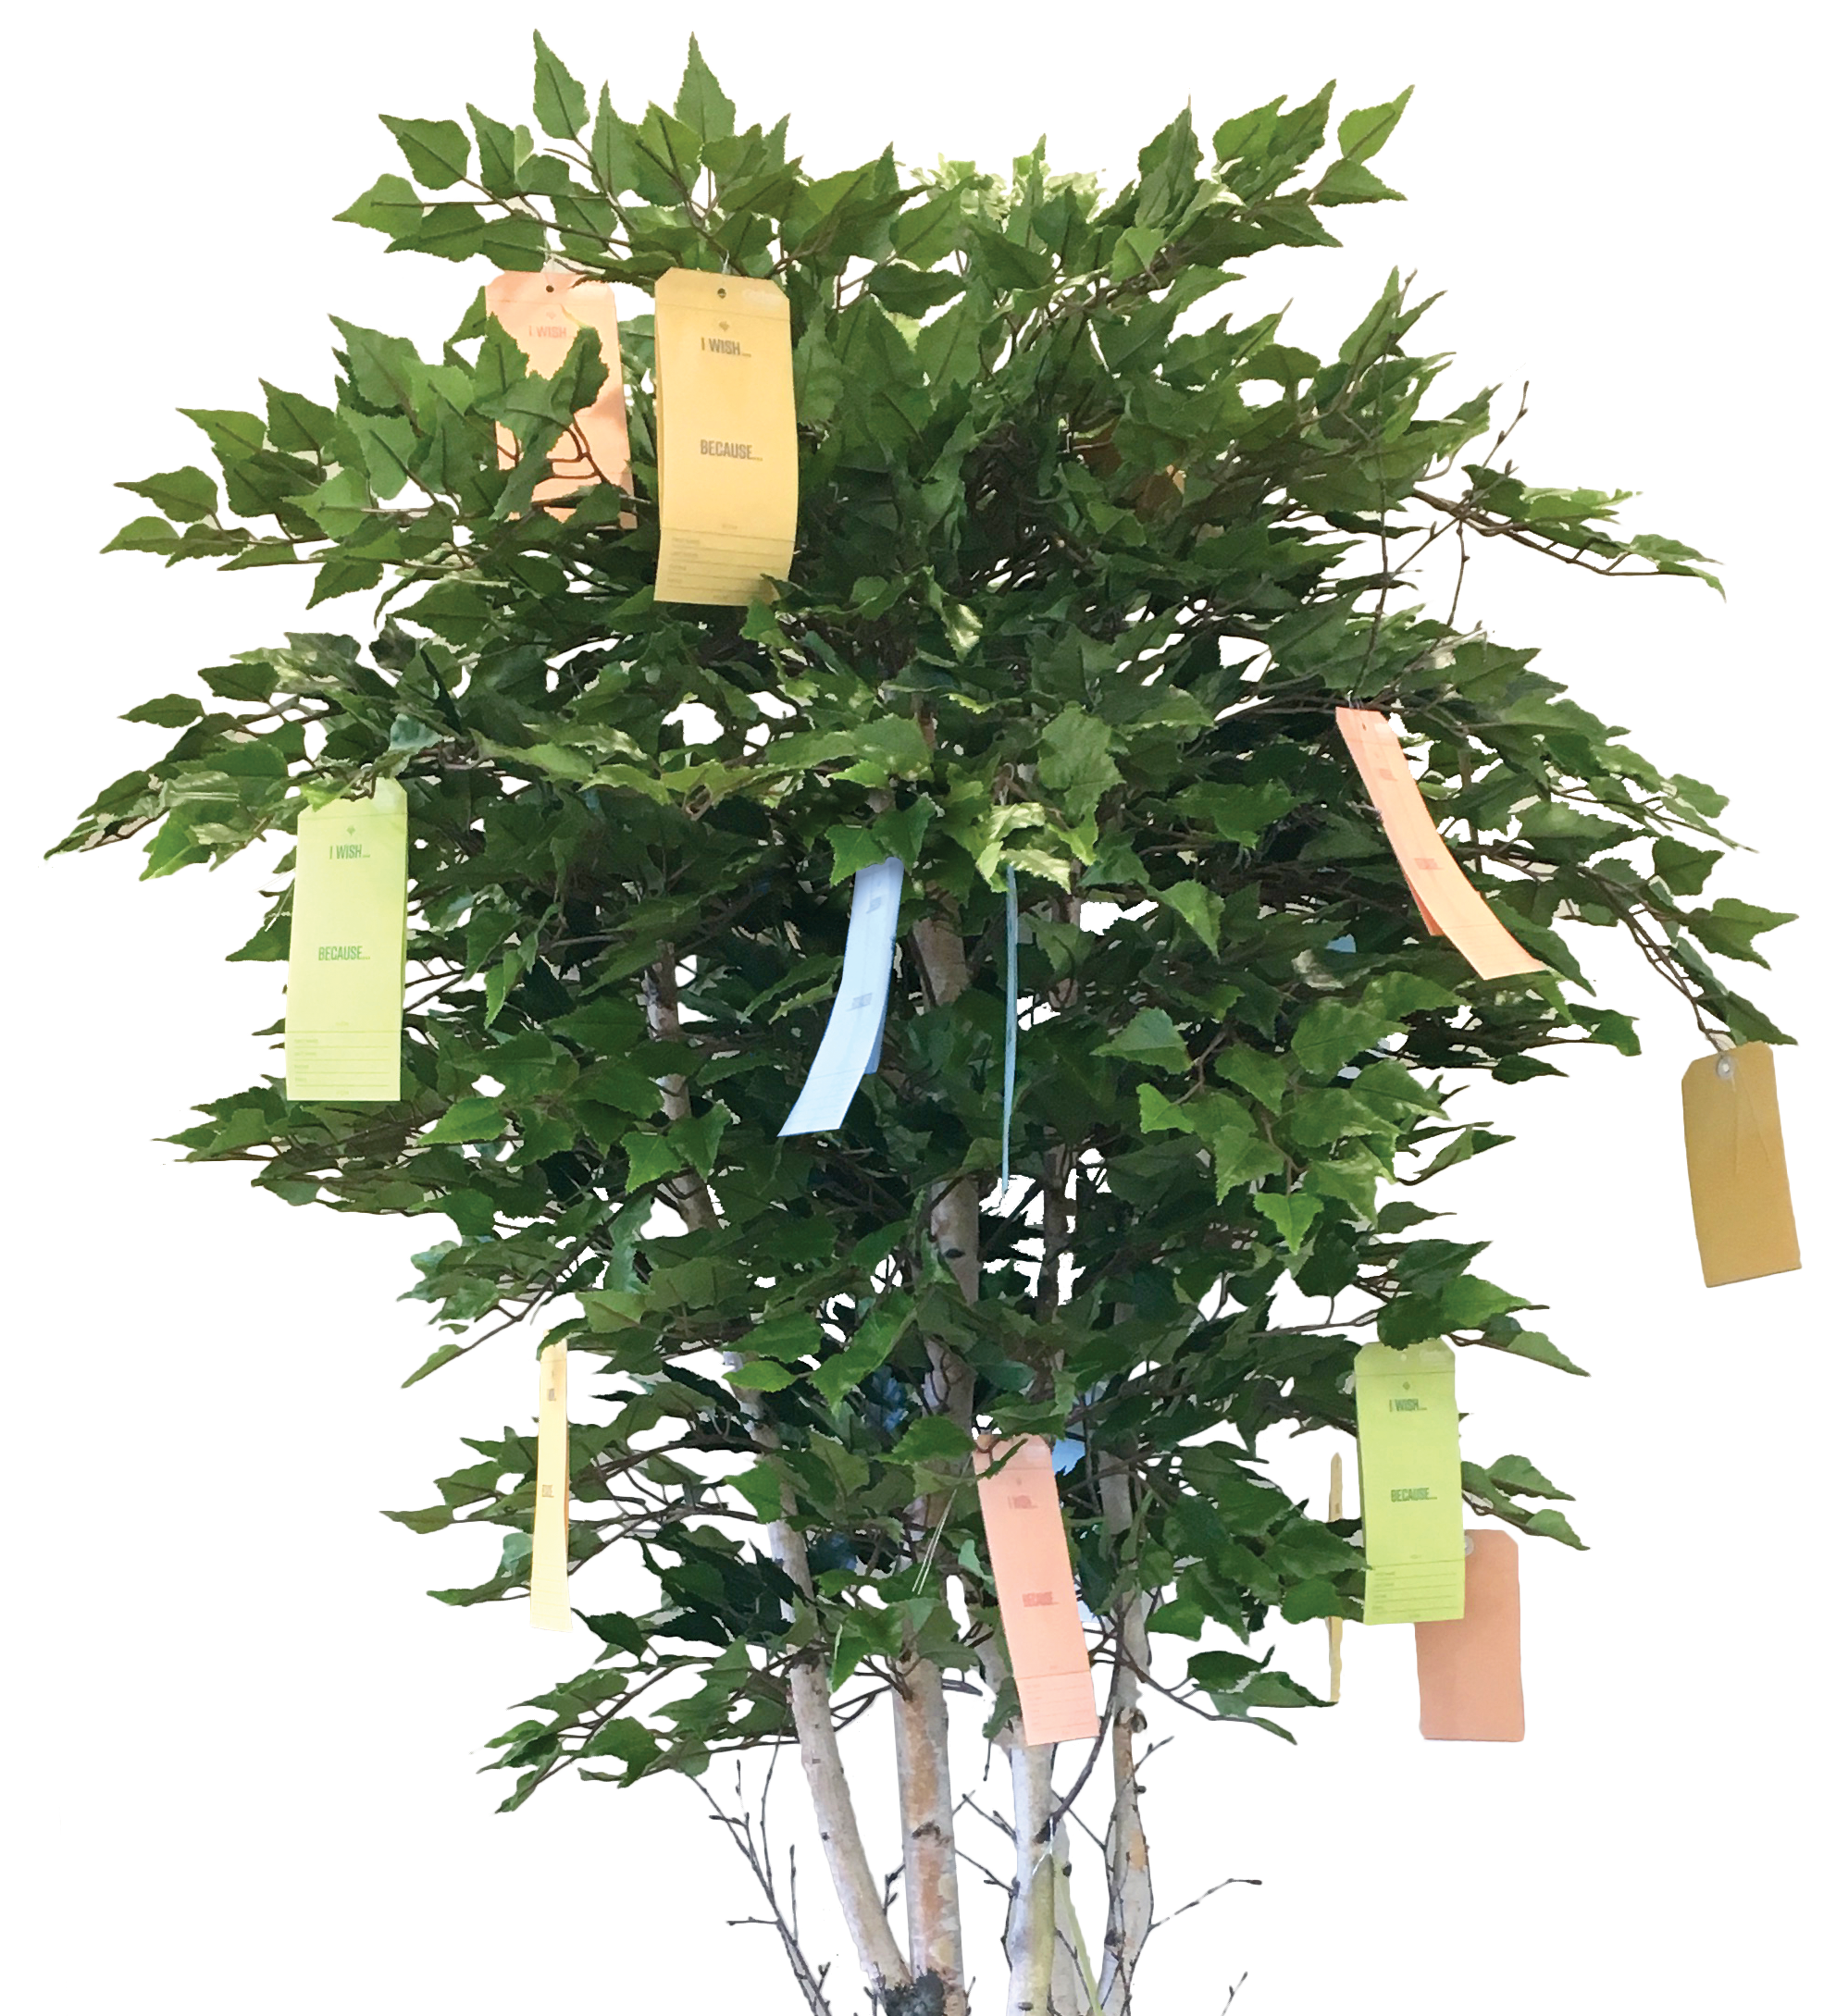 Tree with wishes written on paper attached